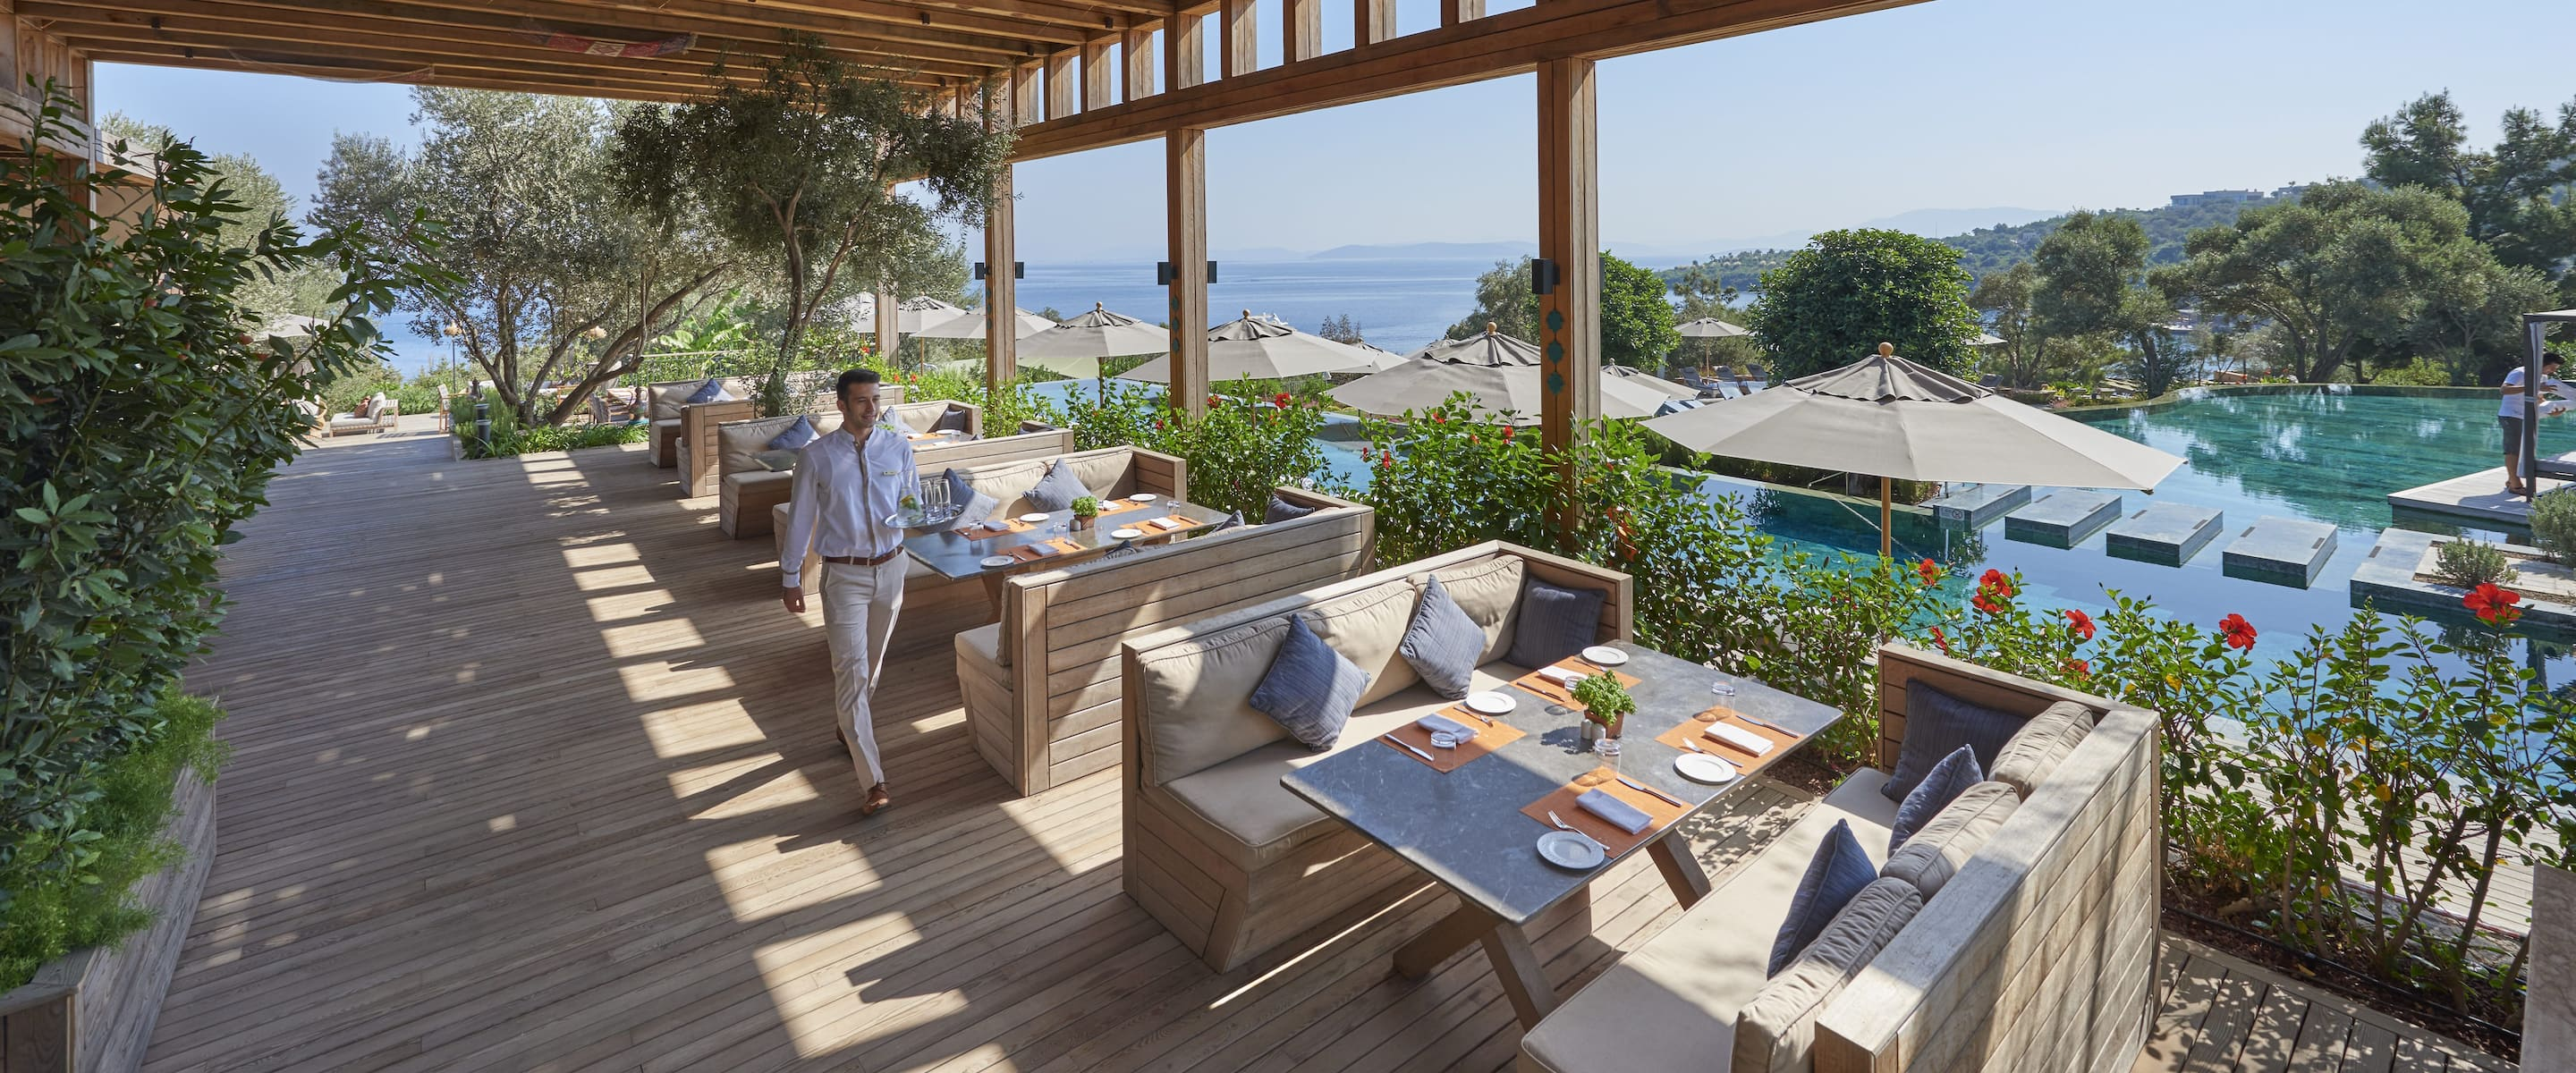 Pool Restaurant Amp Bar In Bodrum Mandarin Oriental Bodrum